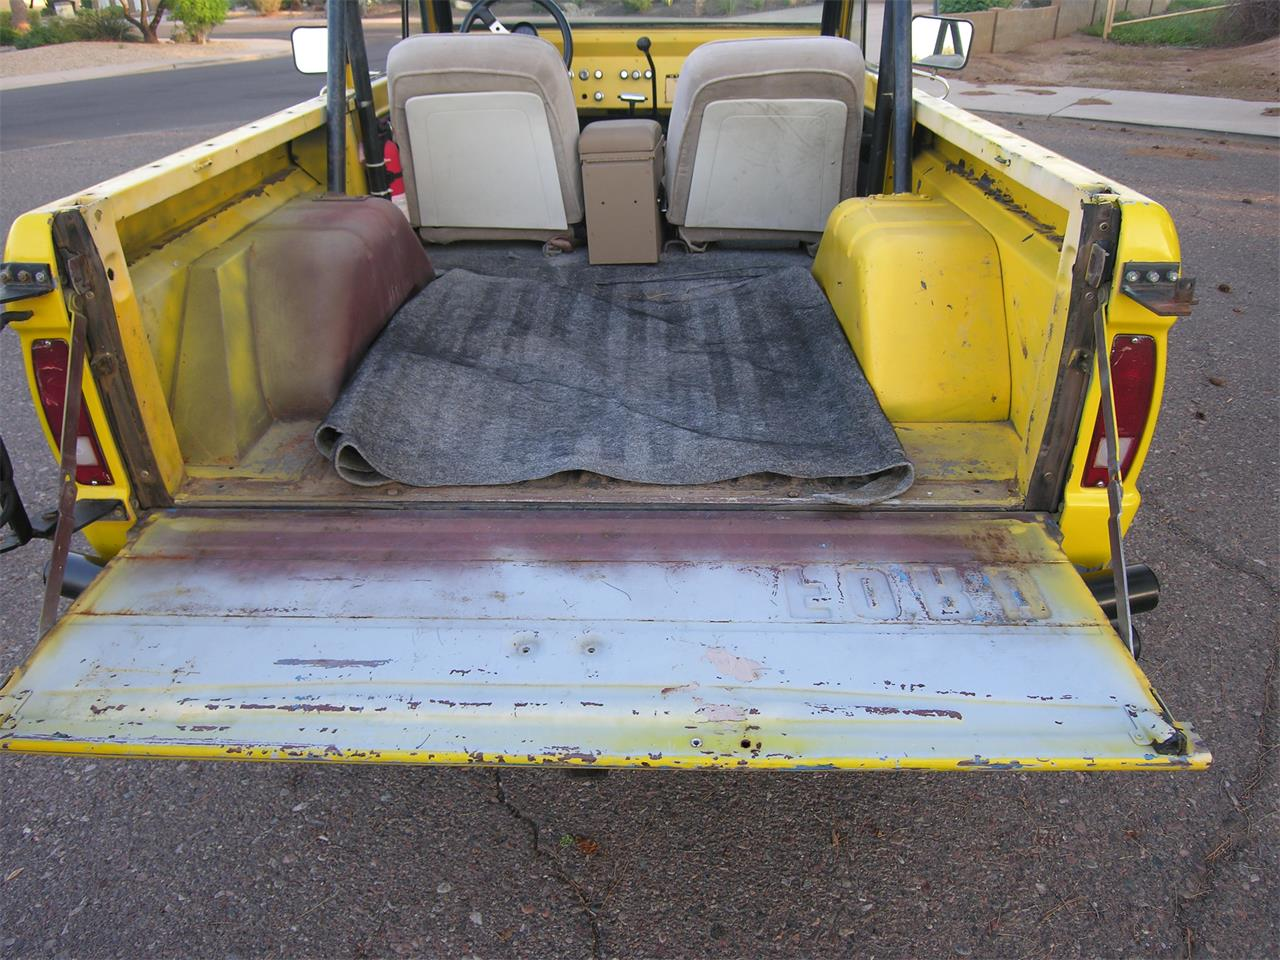 1971 Ford Bronco for sale in Scottsdale, AZ – photo 23